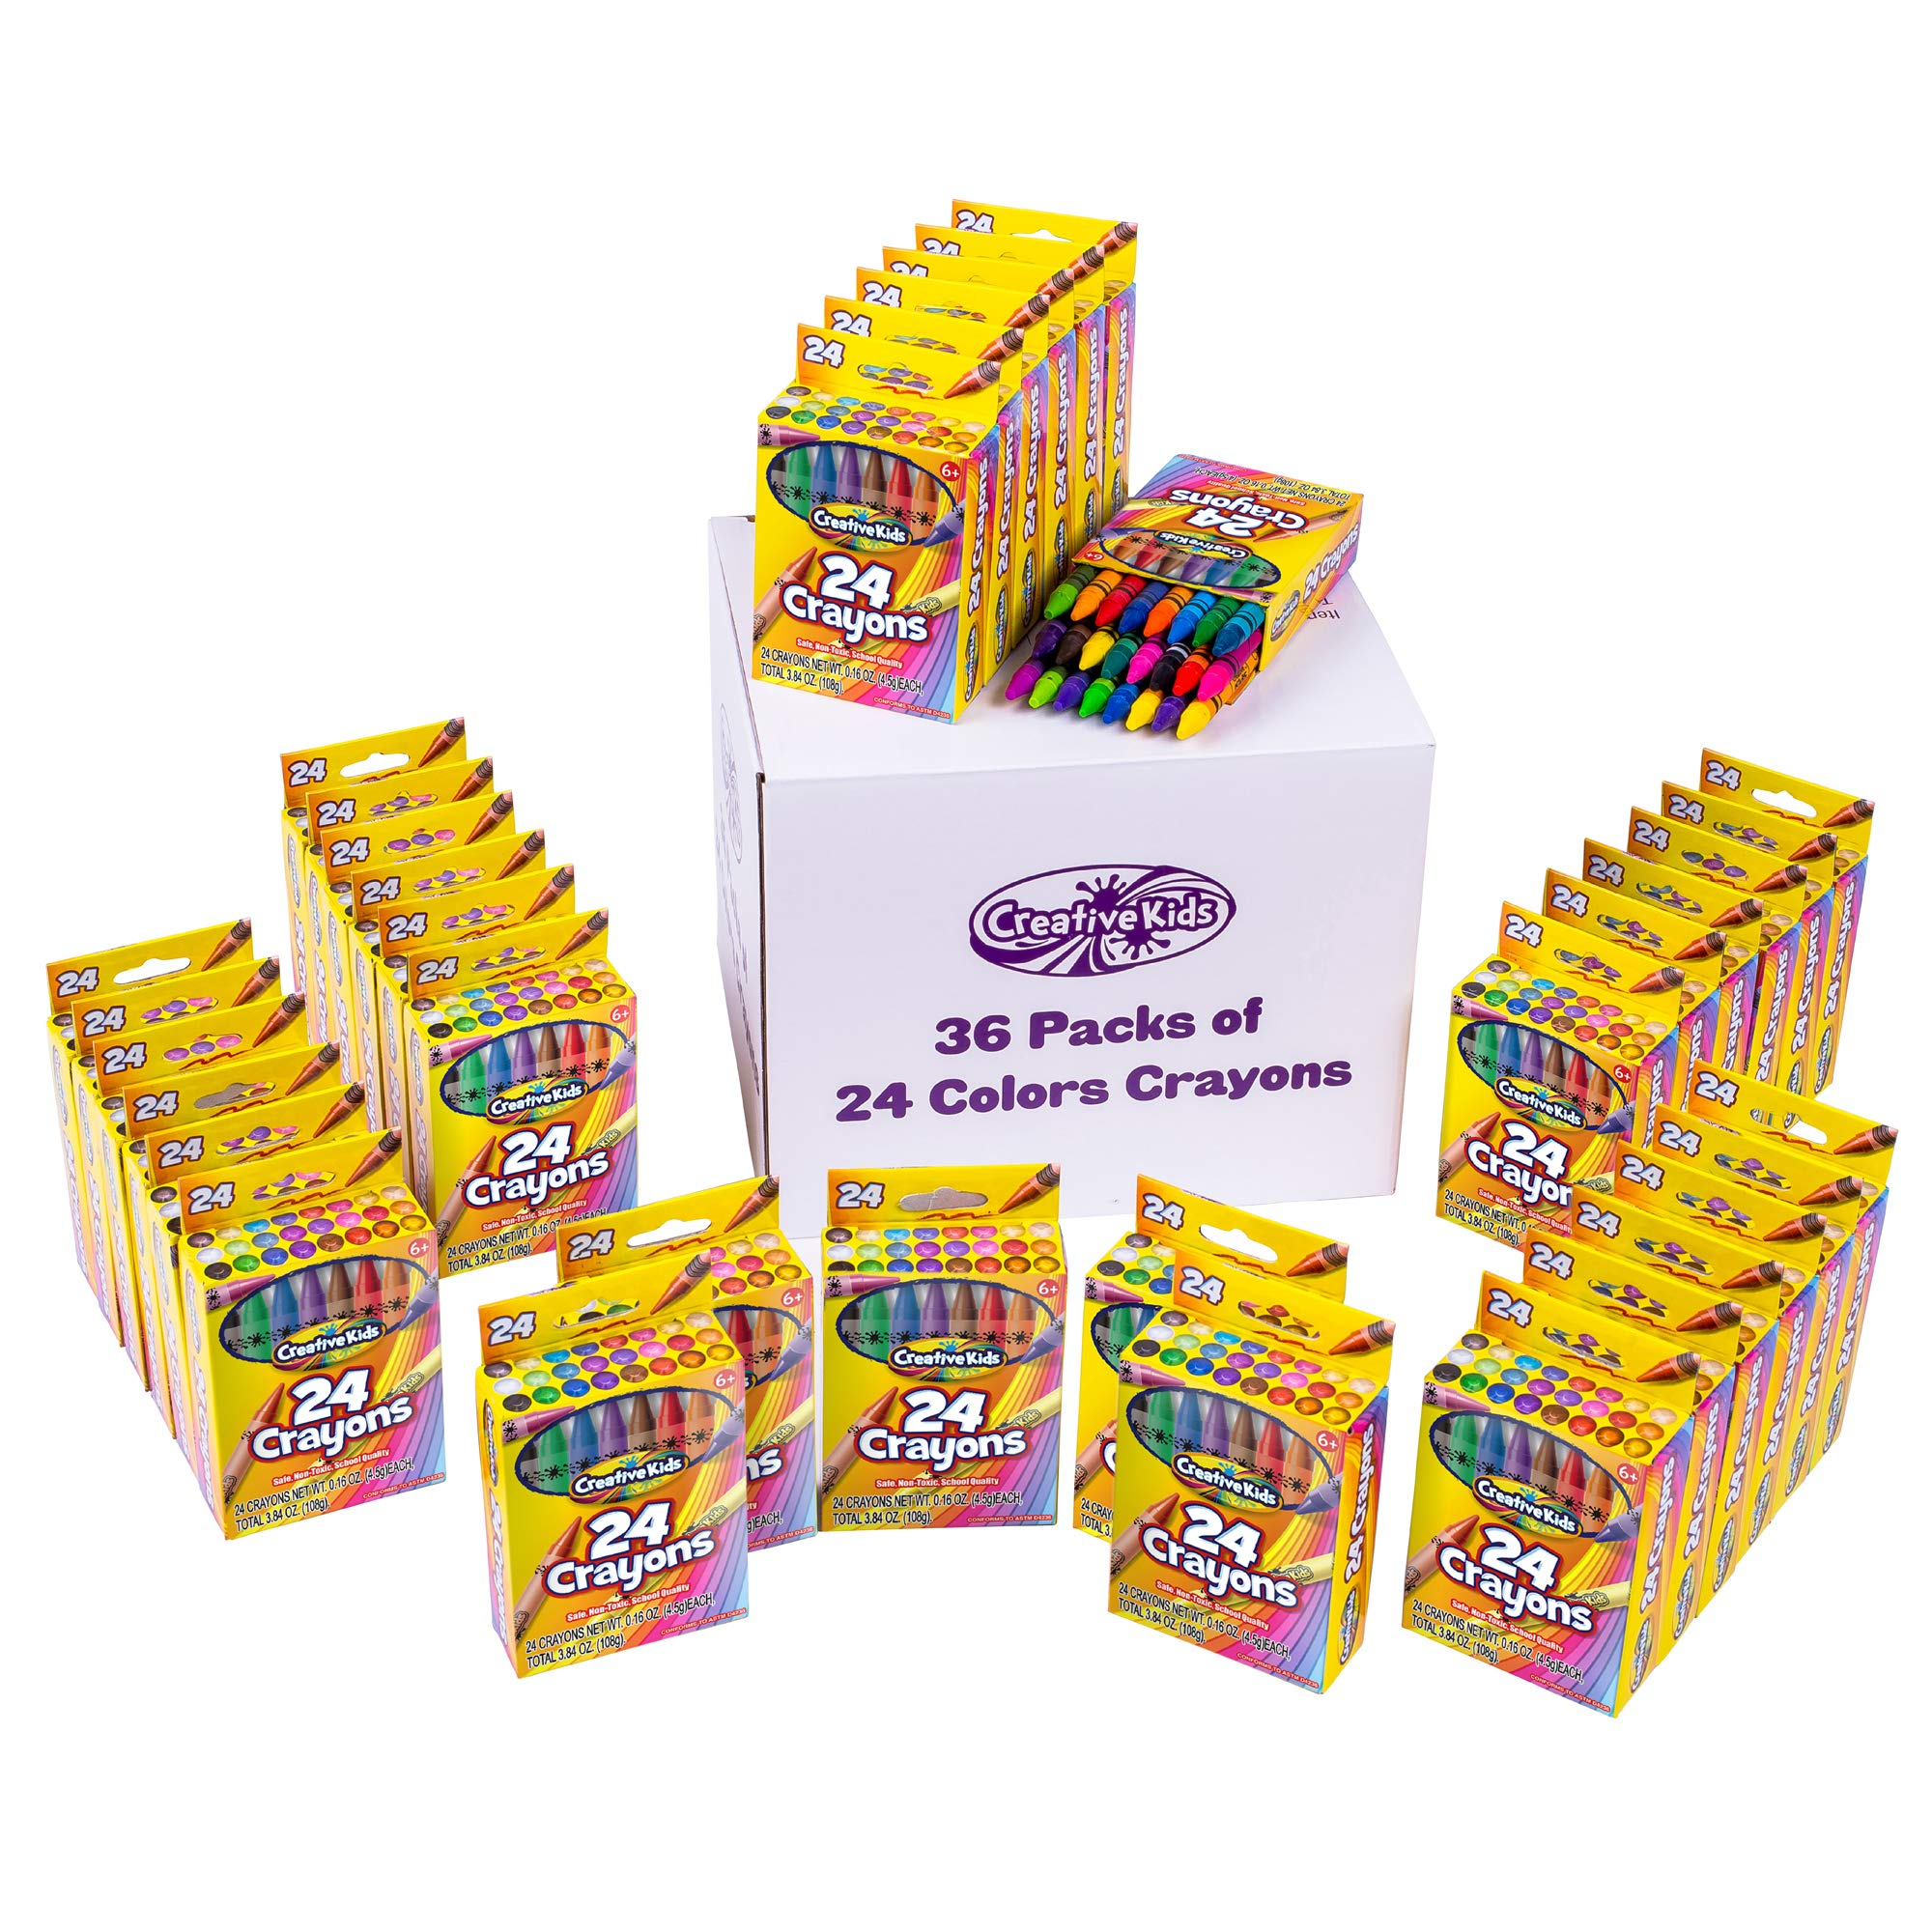 Creative Kids Bulk Crayons Classroom Classpacks Sets - 36 Packs of 24 Assorted Wax Coloring Crayons For Party Favors Preschool, Kindergarten, School & Art Crafts Supplies - Conforms ASTM Non Toxic by Creative Kids